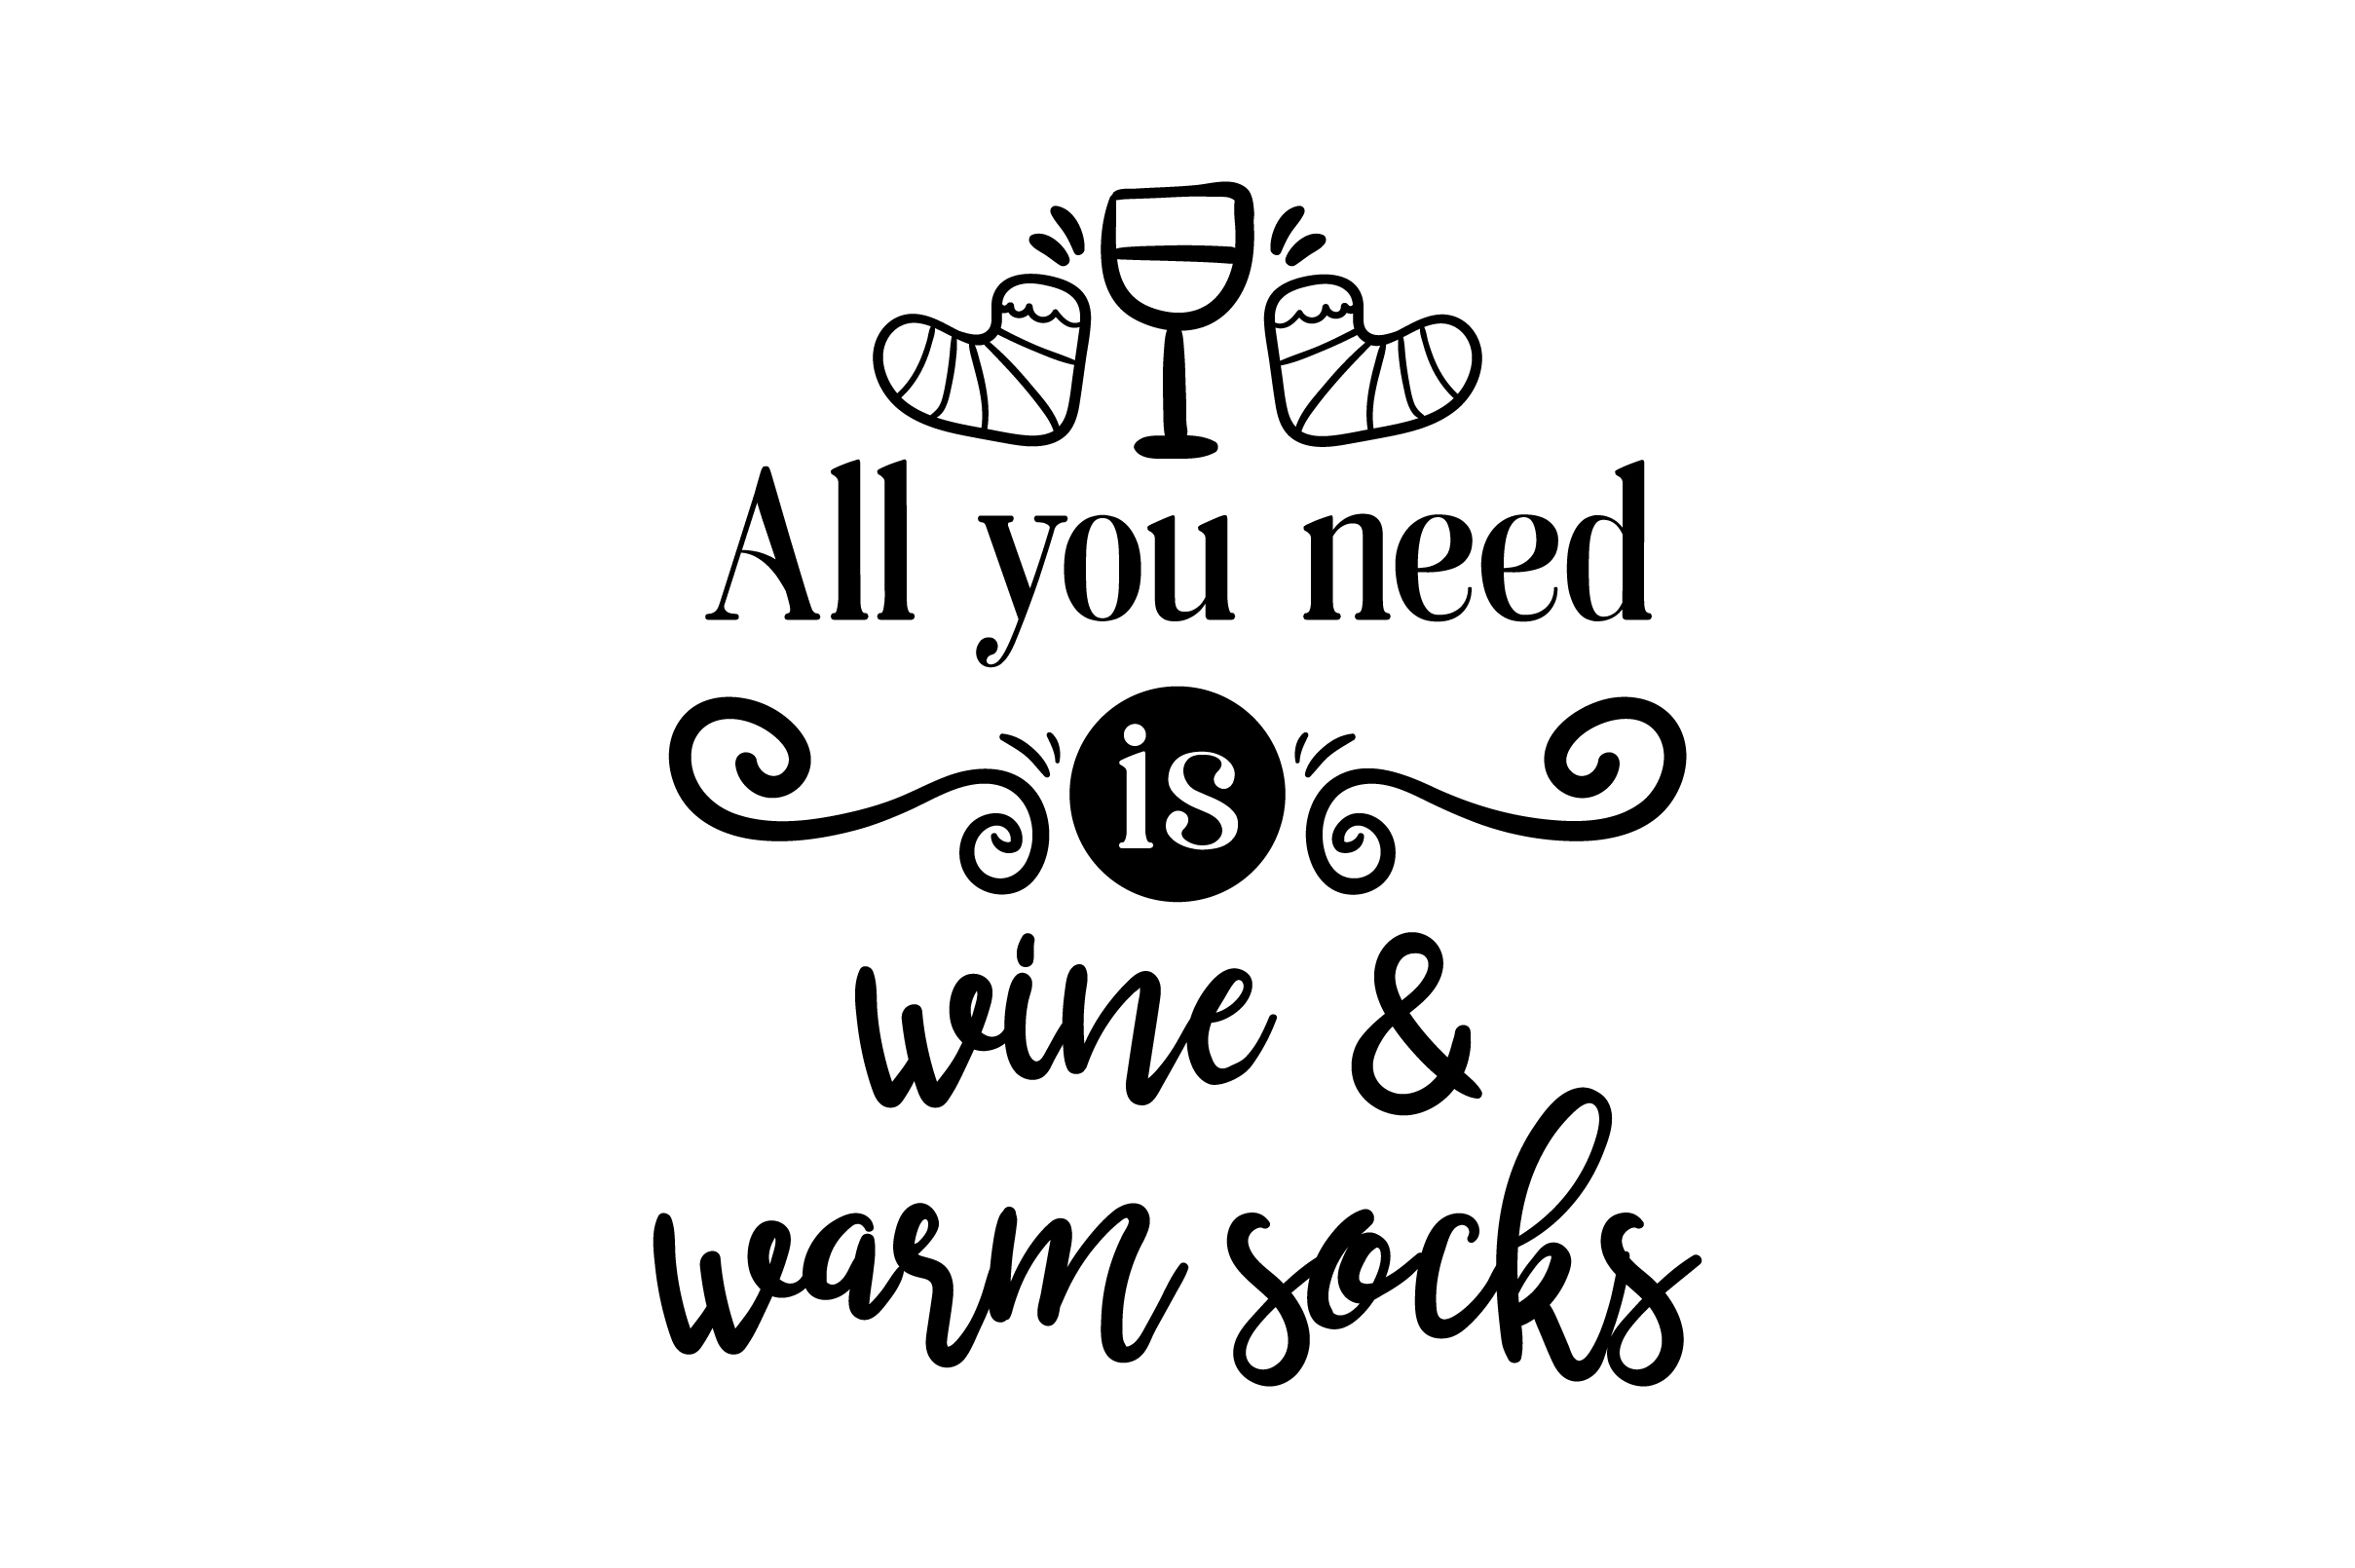 Download Free All You Need Is Wine Warm Socks Svg Cut File By Creative for Cricut Explore, Silhouette and other cutting machines.